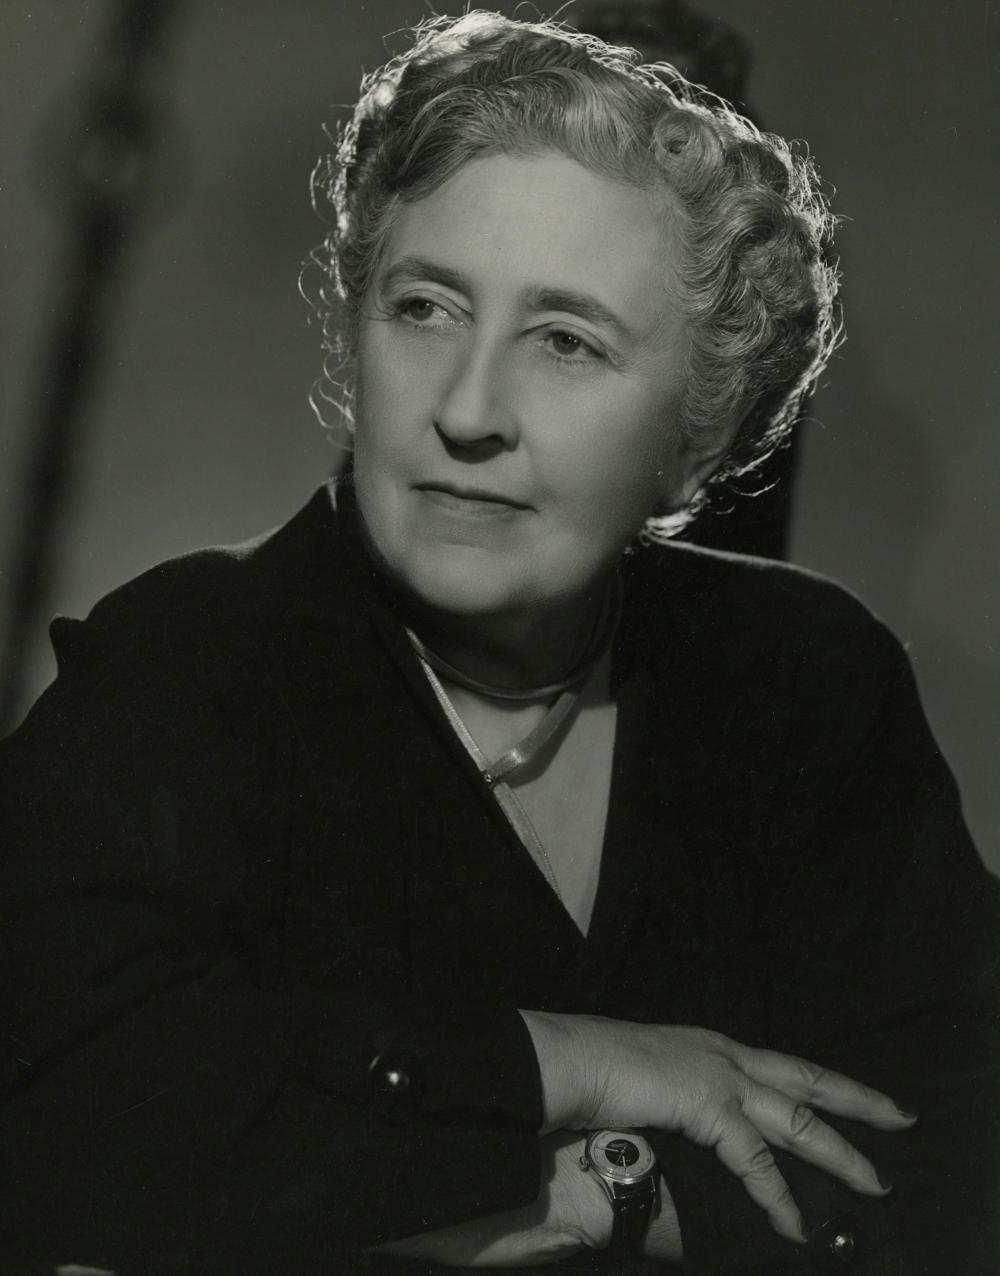 Agatha Christie in black and white